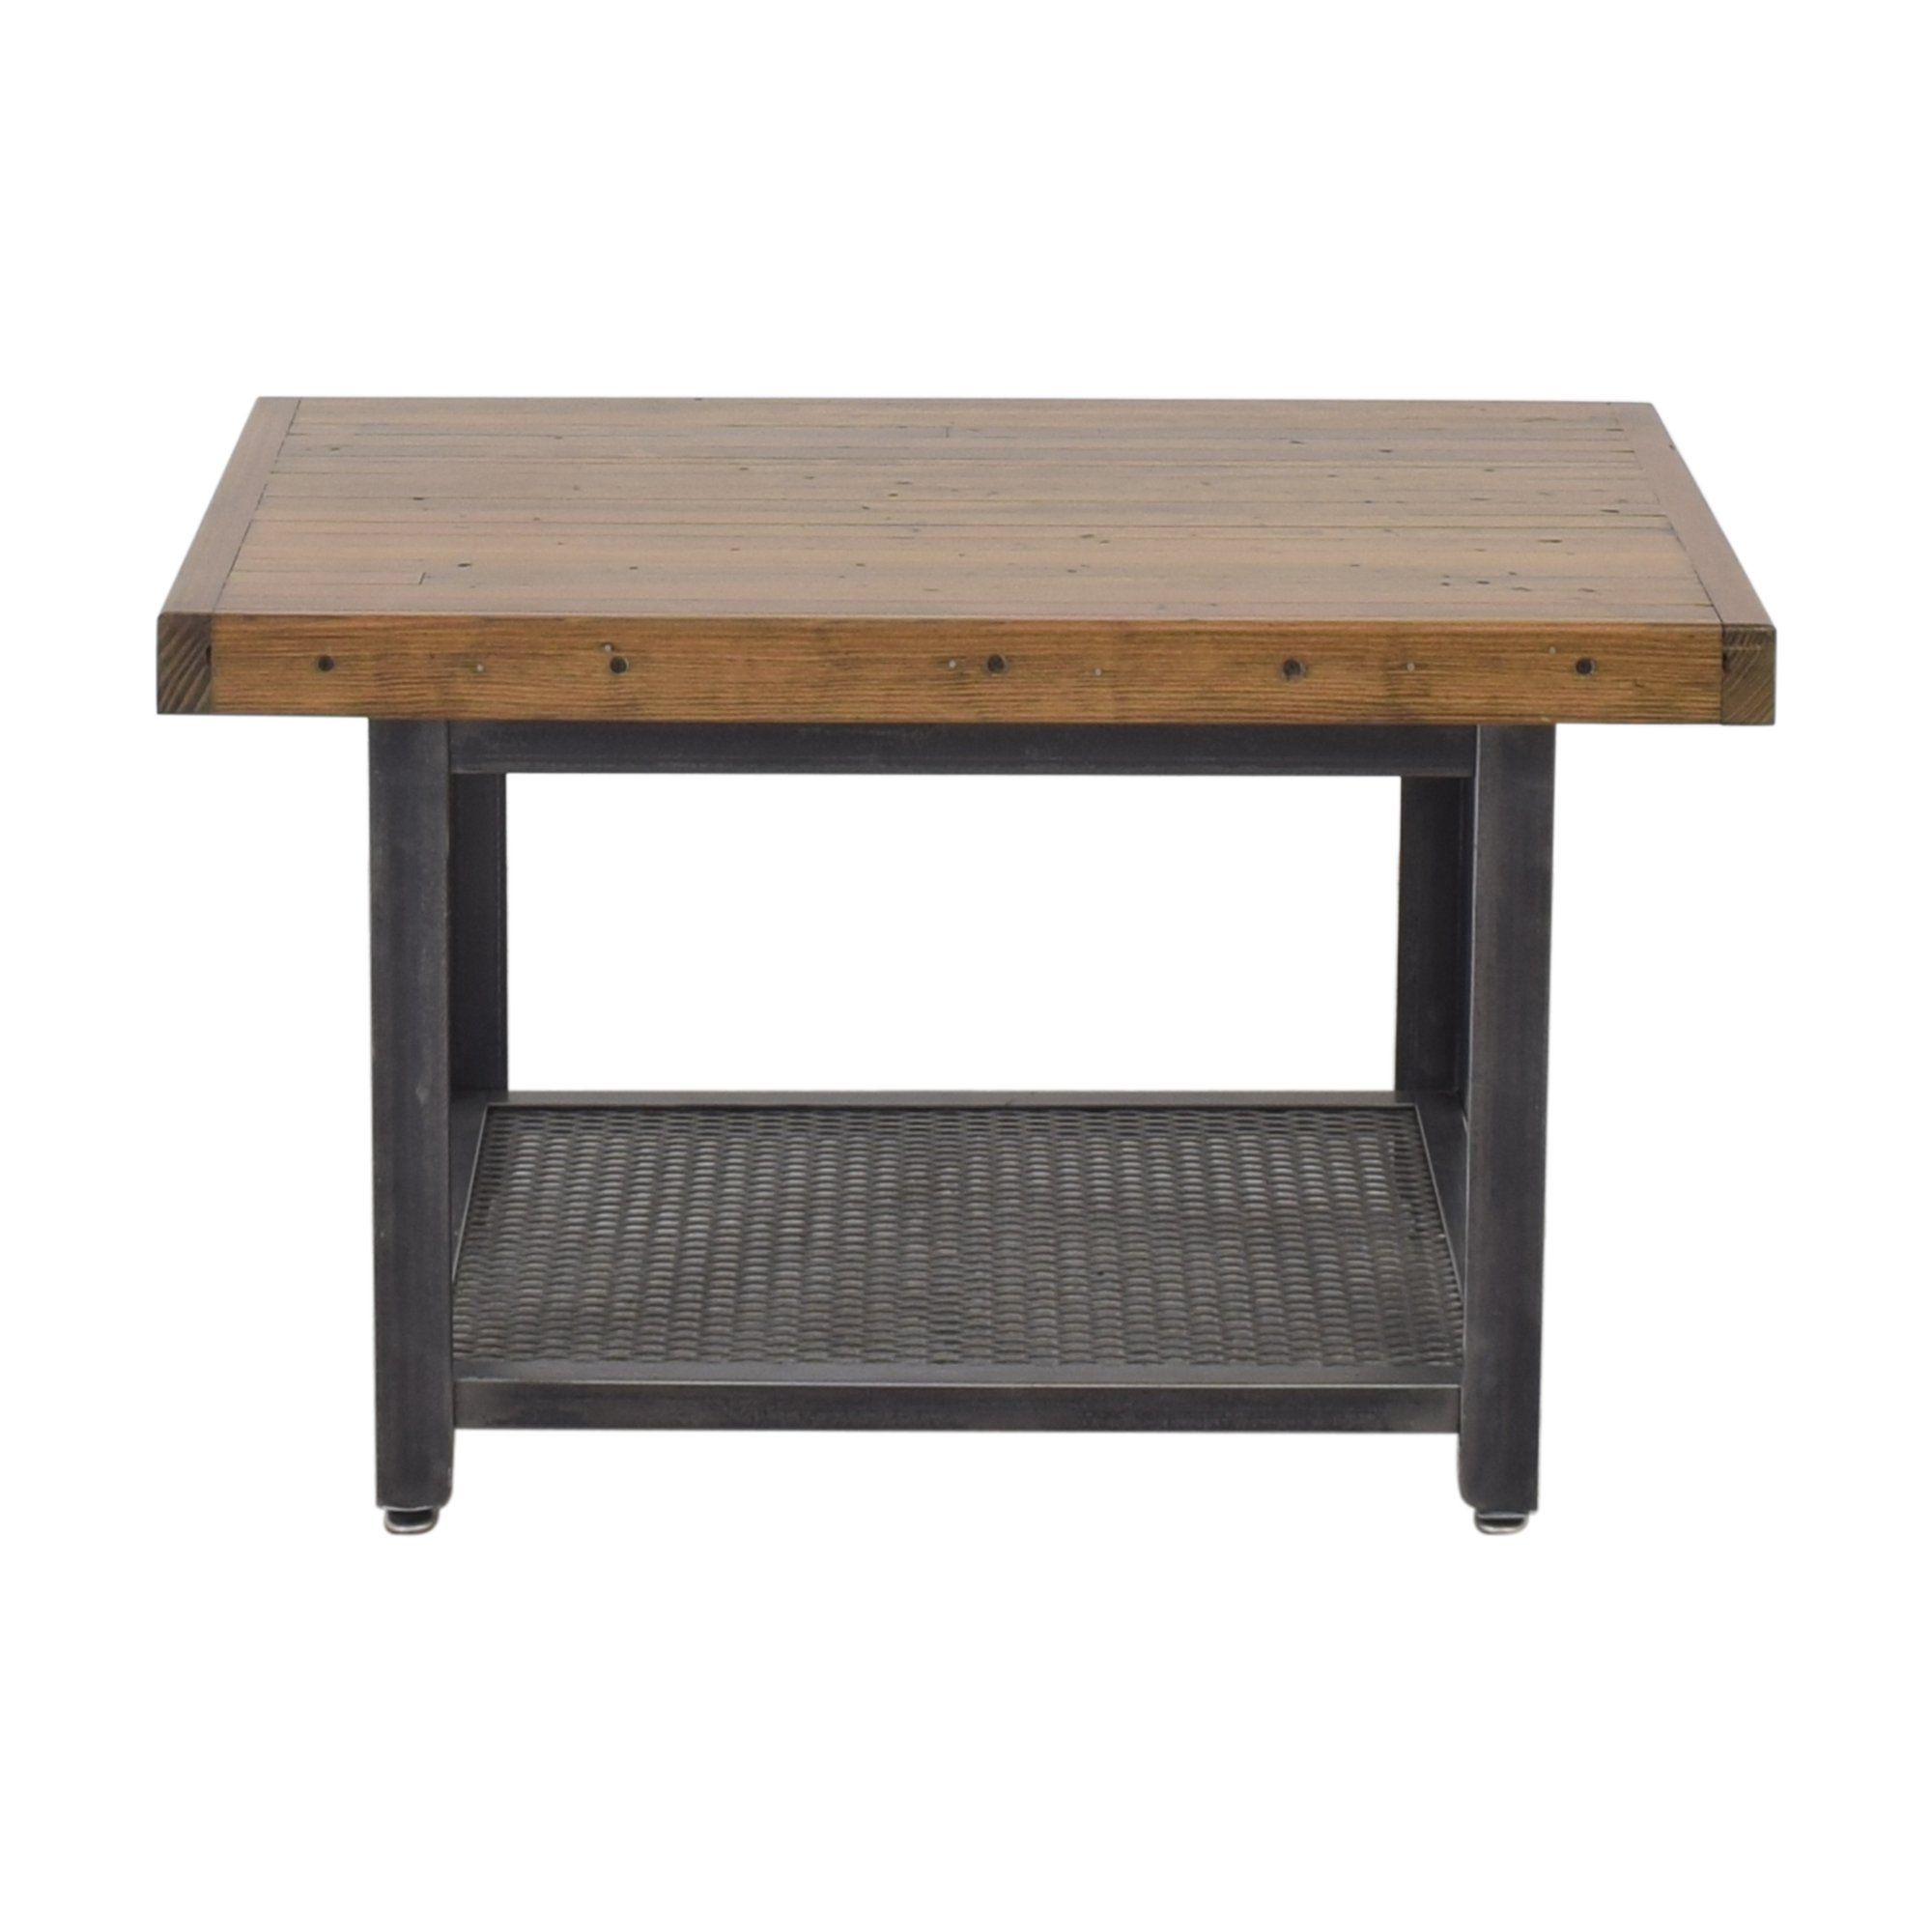 Brooklyn Reclaimed Industrial Coffee Table / Coffee Tables